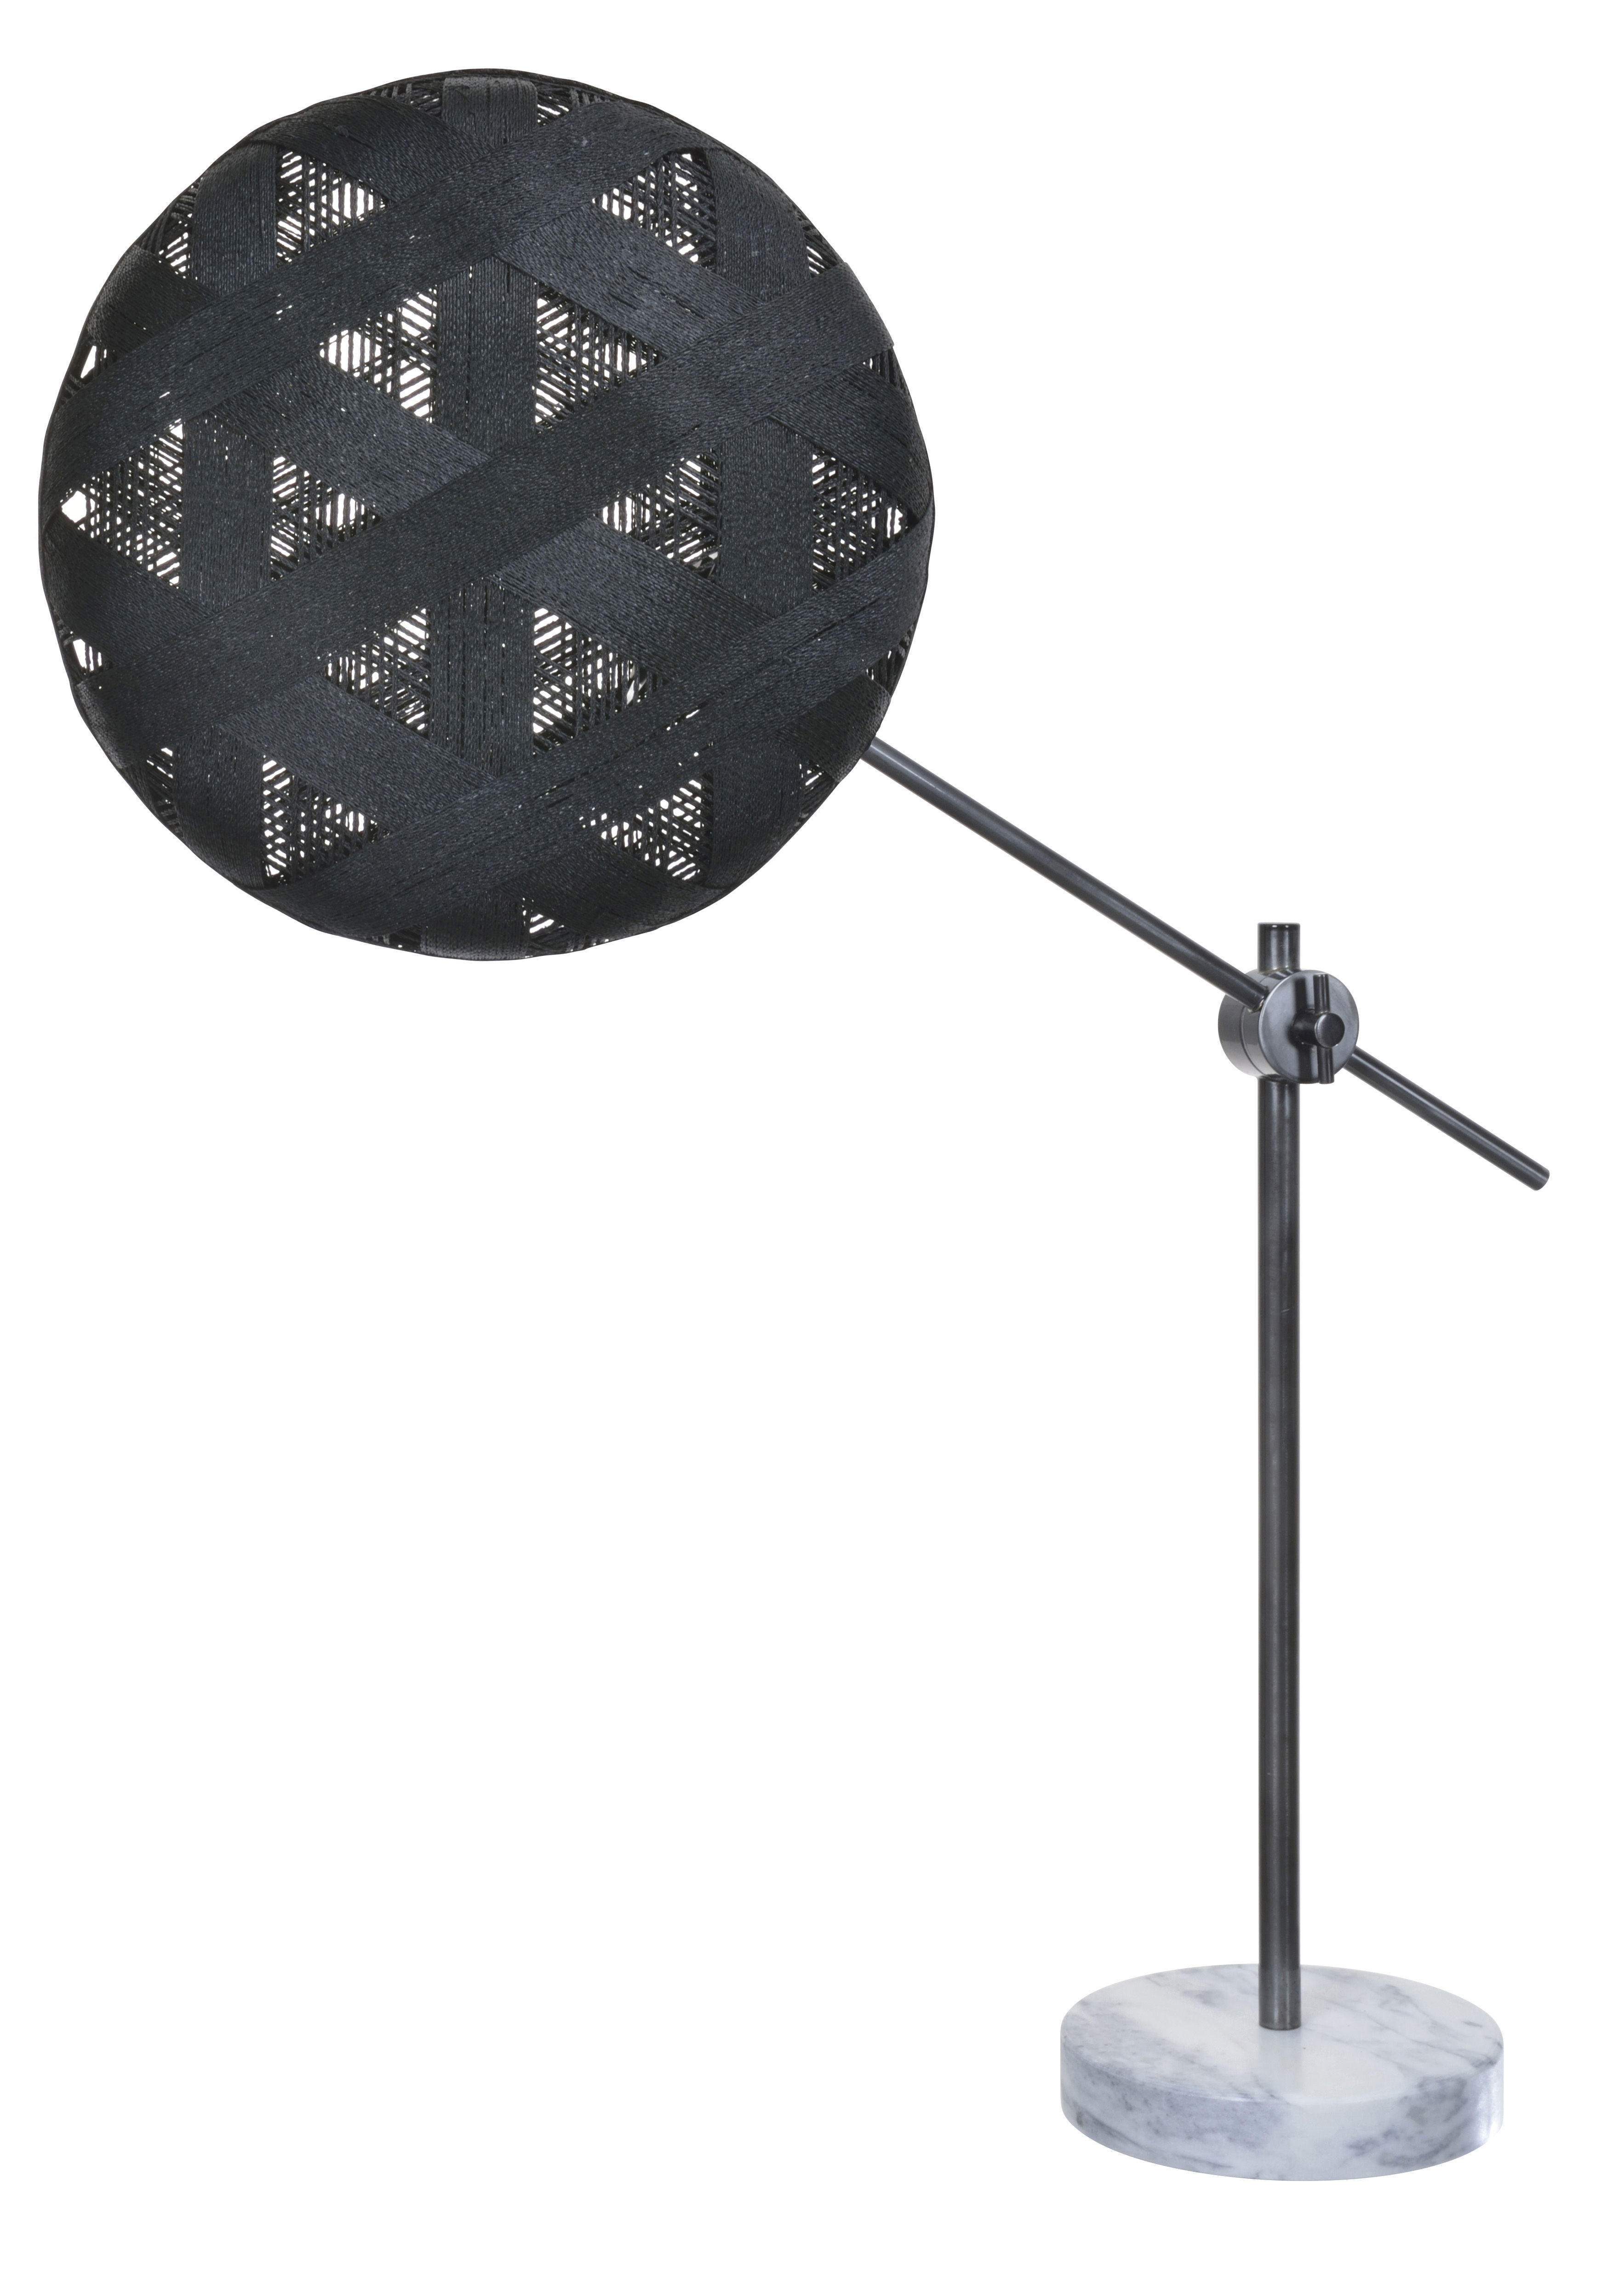 Lighting - Table Lamps - Chanpen Hexagon Table lamp - High / Ø 36 cm - triangle patterns by Forestier - Black / Gun metal - Marble, Metal, Woven acaba